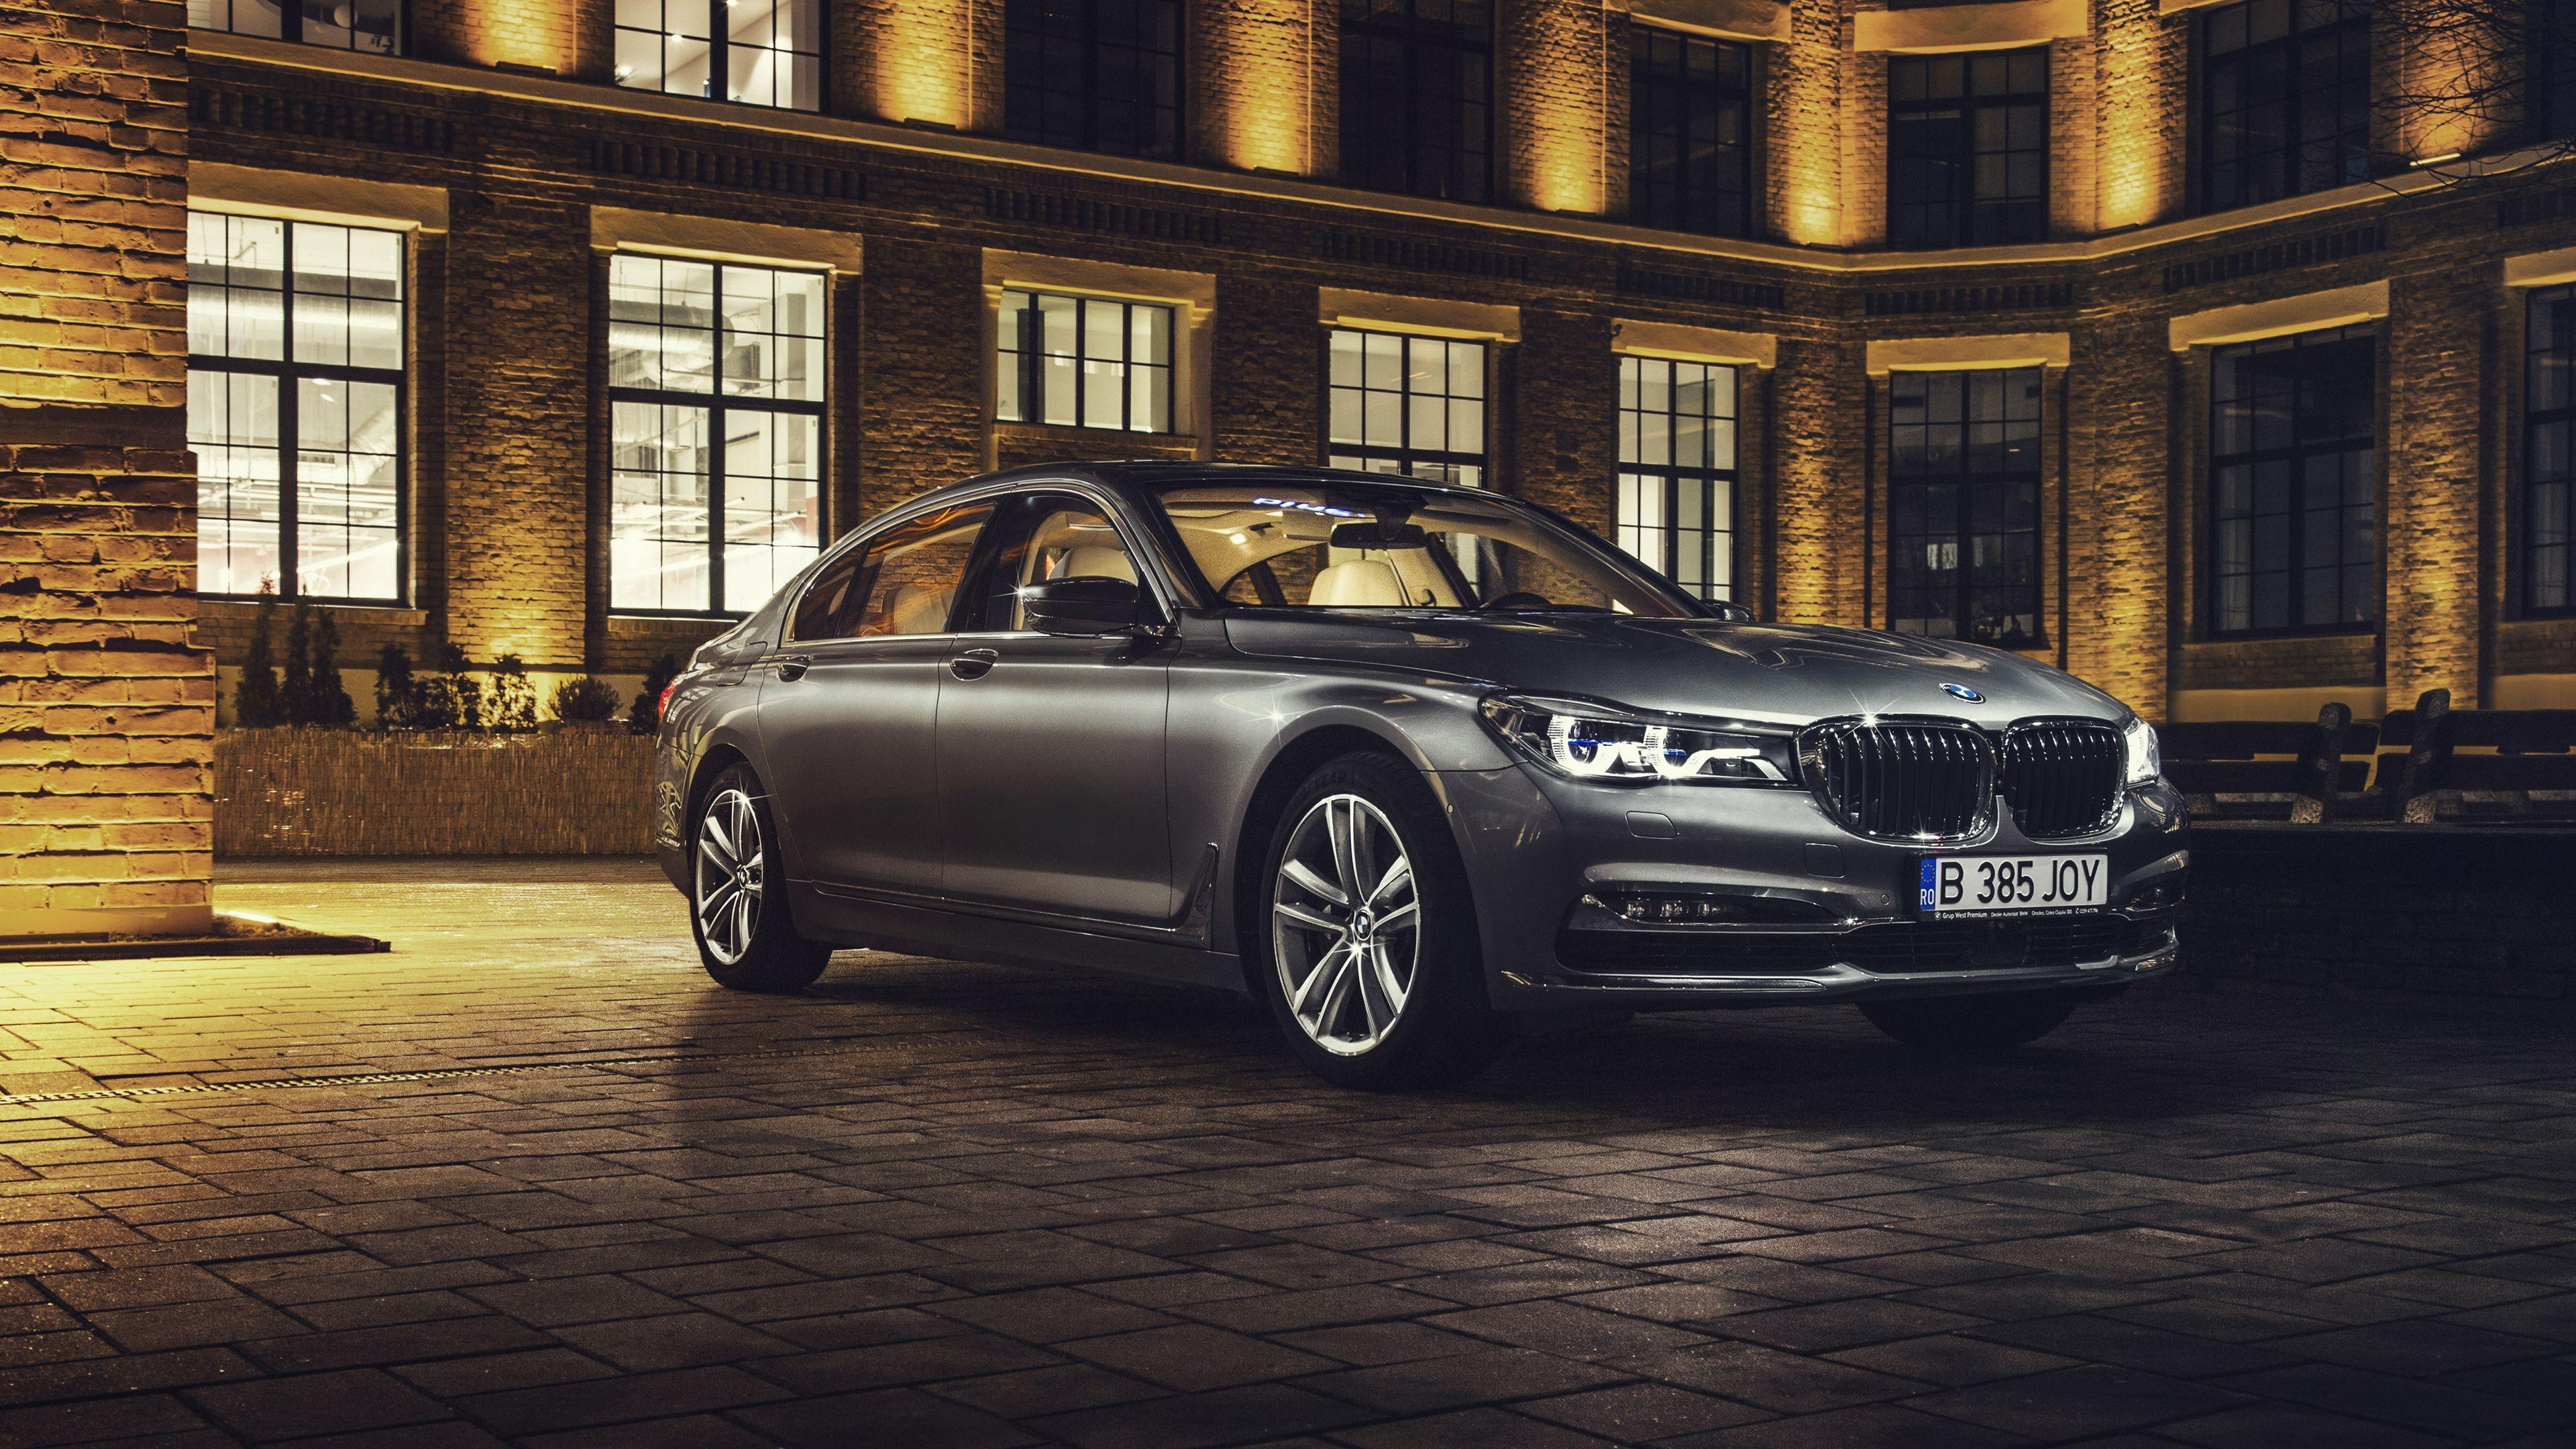 2017 BMW 7 Series Wallpapers